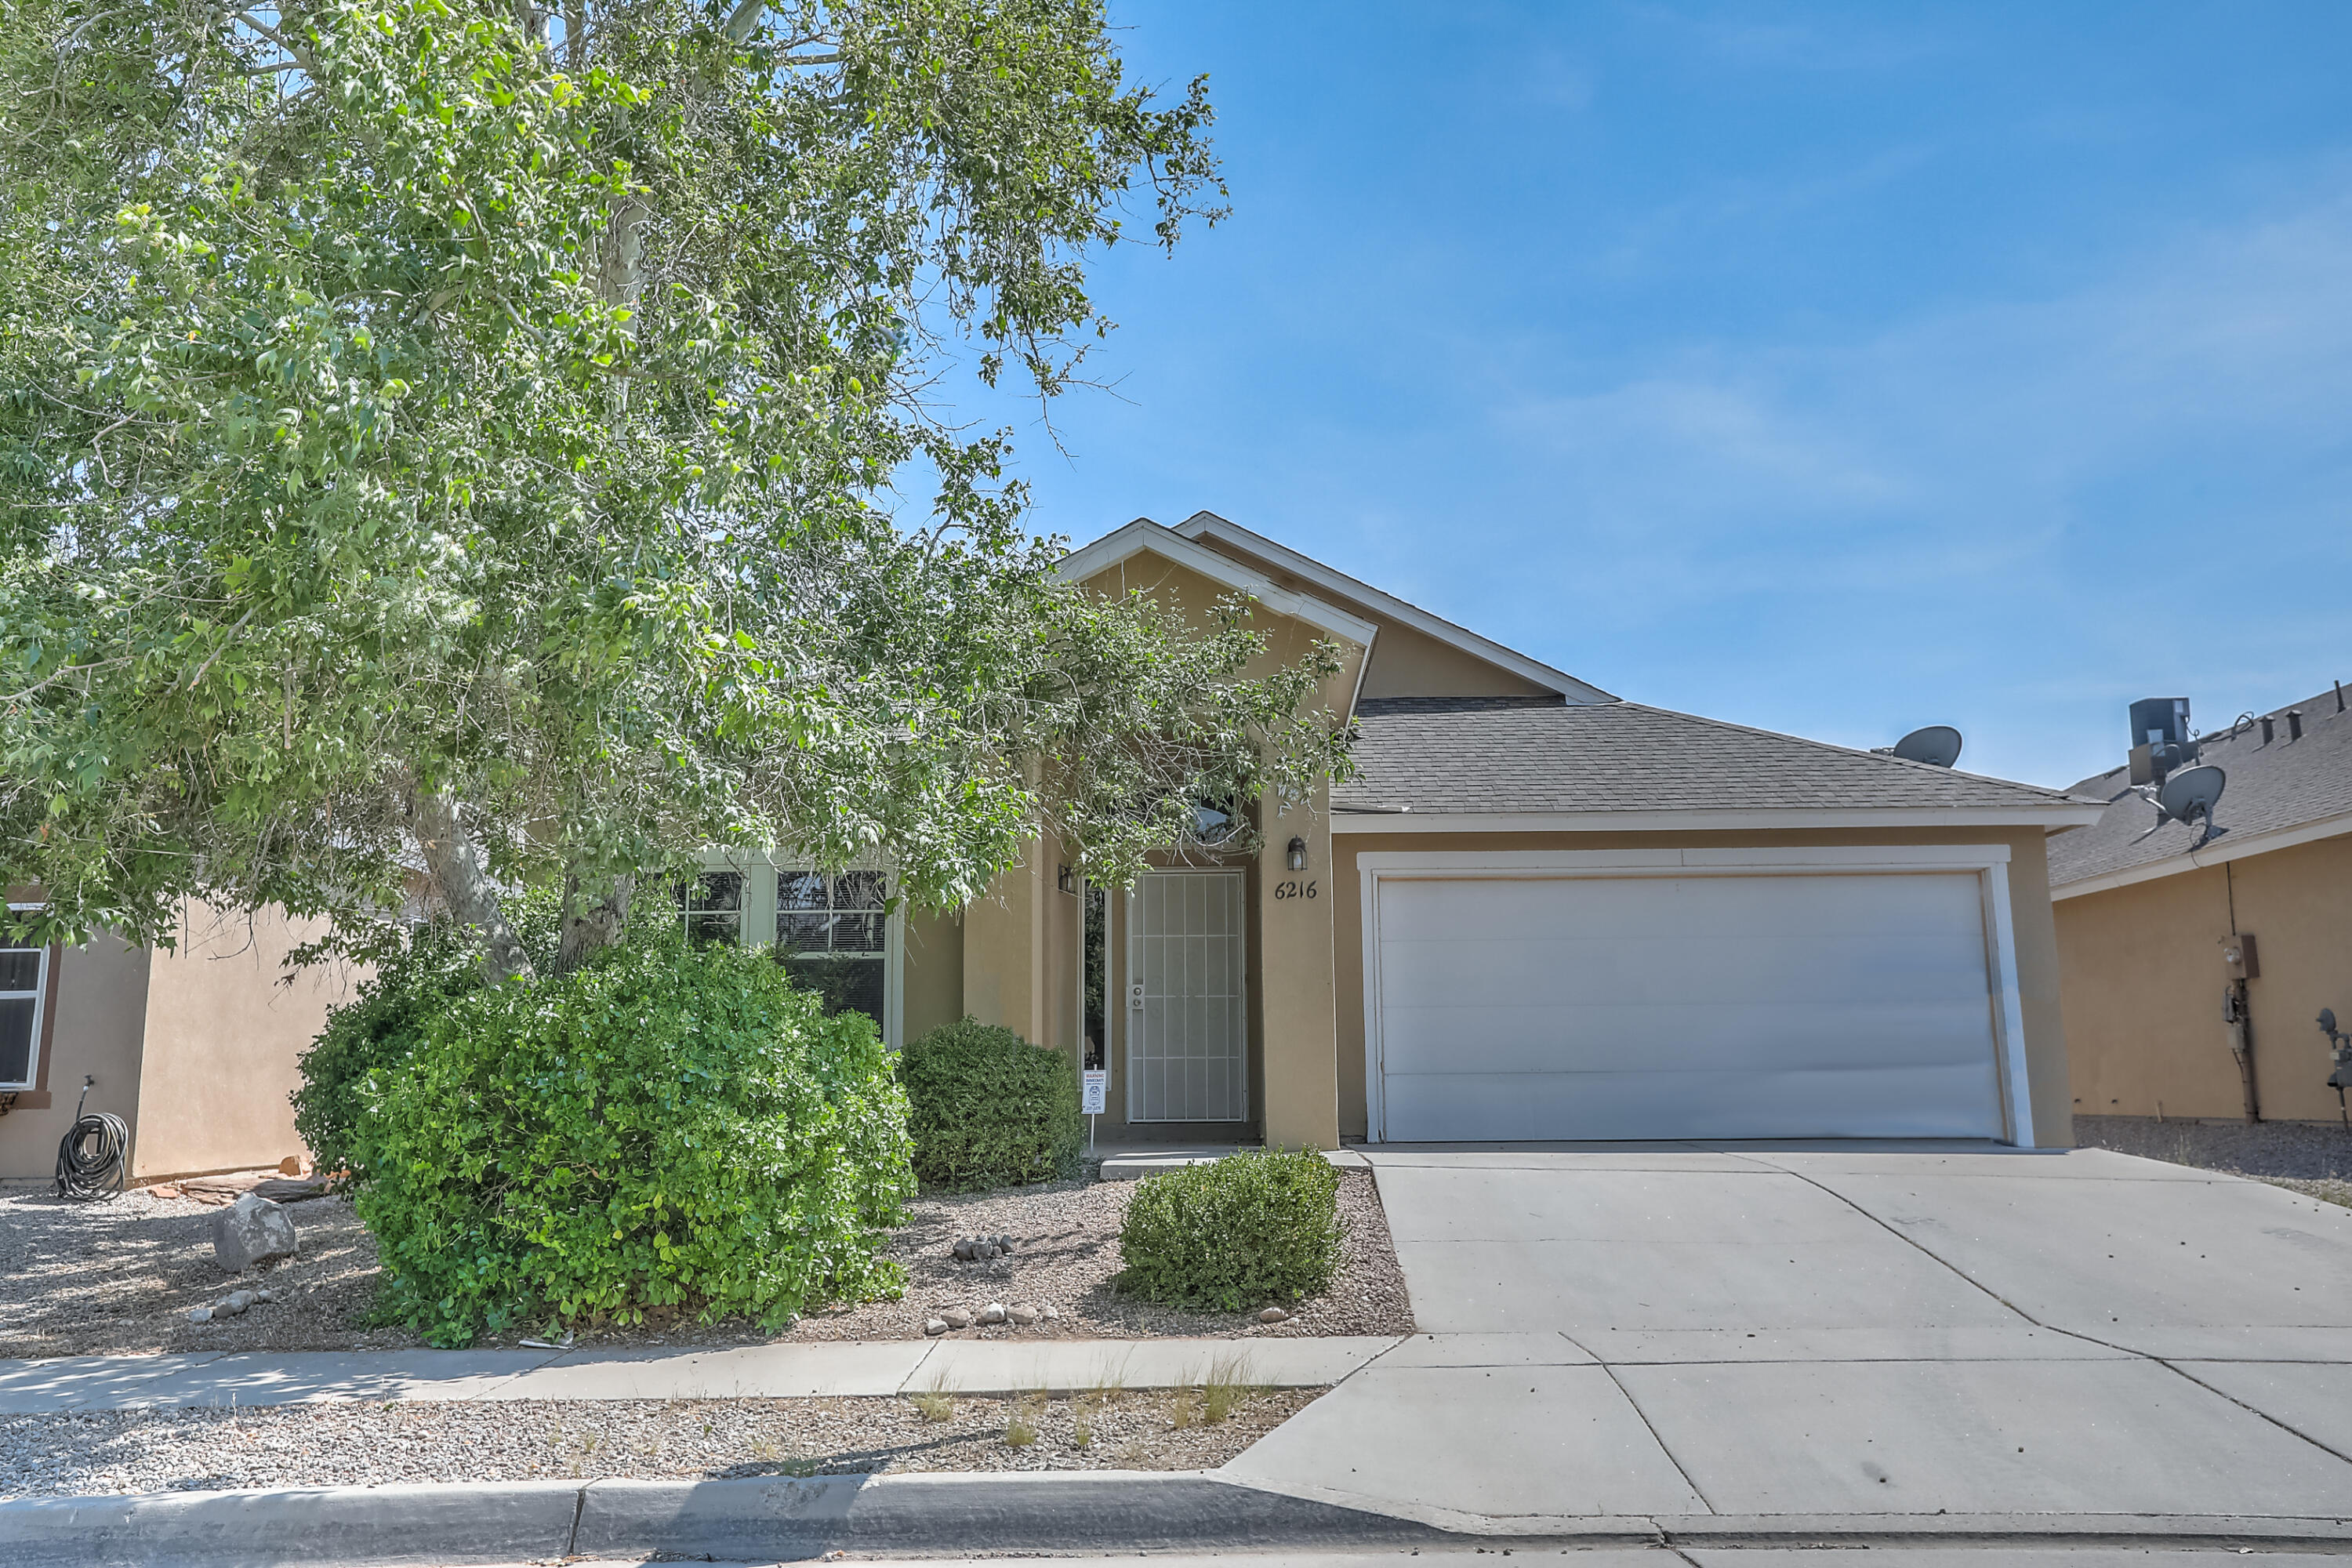 Awesome 3 bedroom, 2 full bath home! Open floor plan, with kitchen overlooking the Great room. Soaring ceilings! Private backyard. Convenient location to schools, shopping , restaurants. Large Master suite with 2 walk in closets. Garden tub